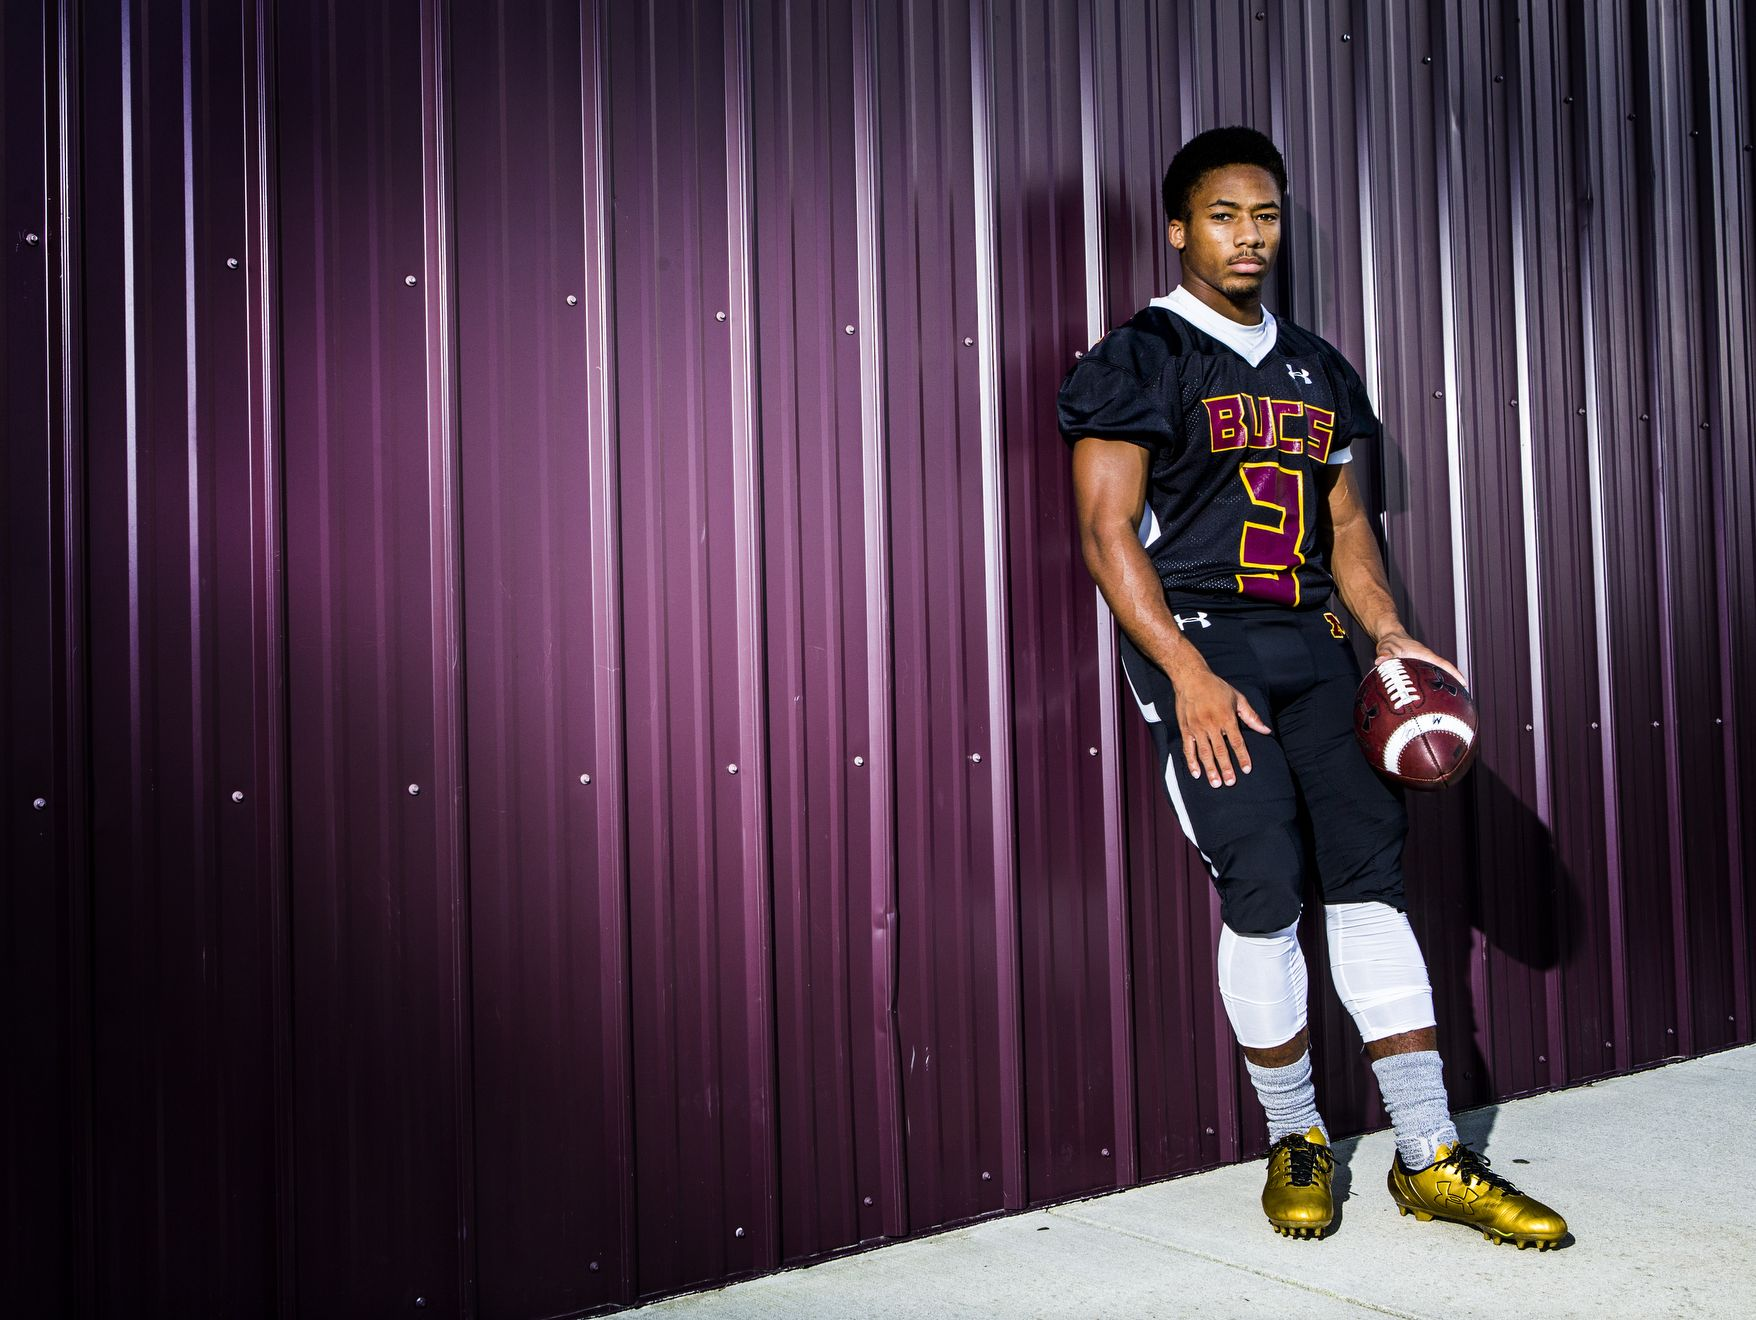 Milford High School running back David Bowman poses for a portrait at the Milford football stadium on Monday afternoon.